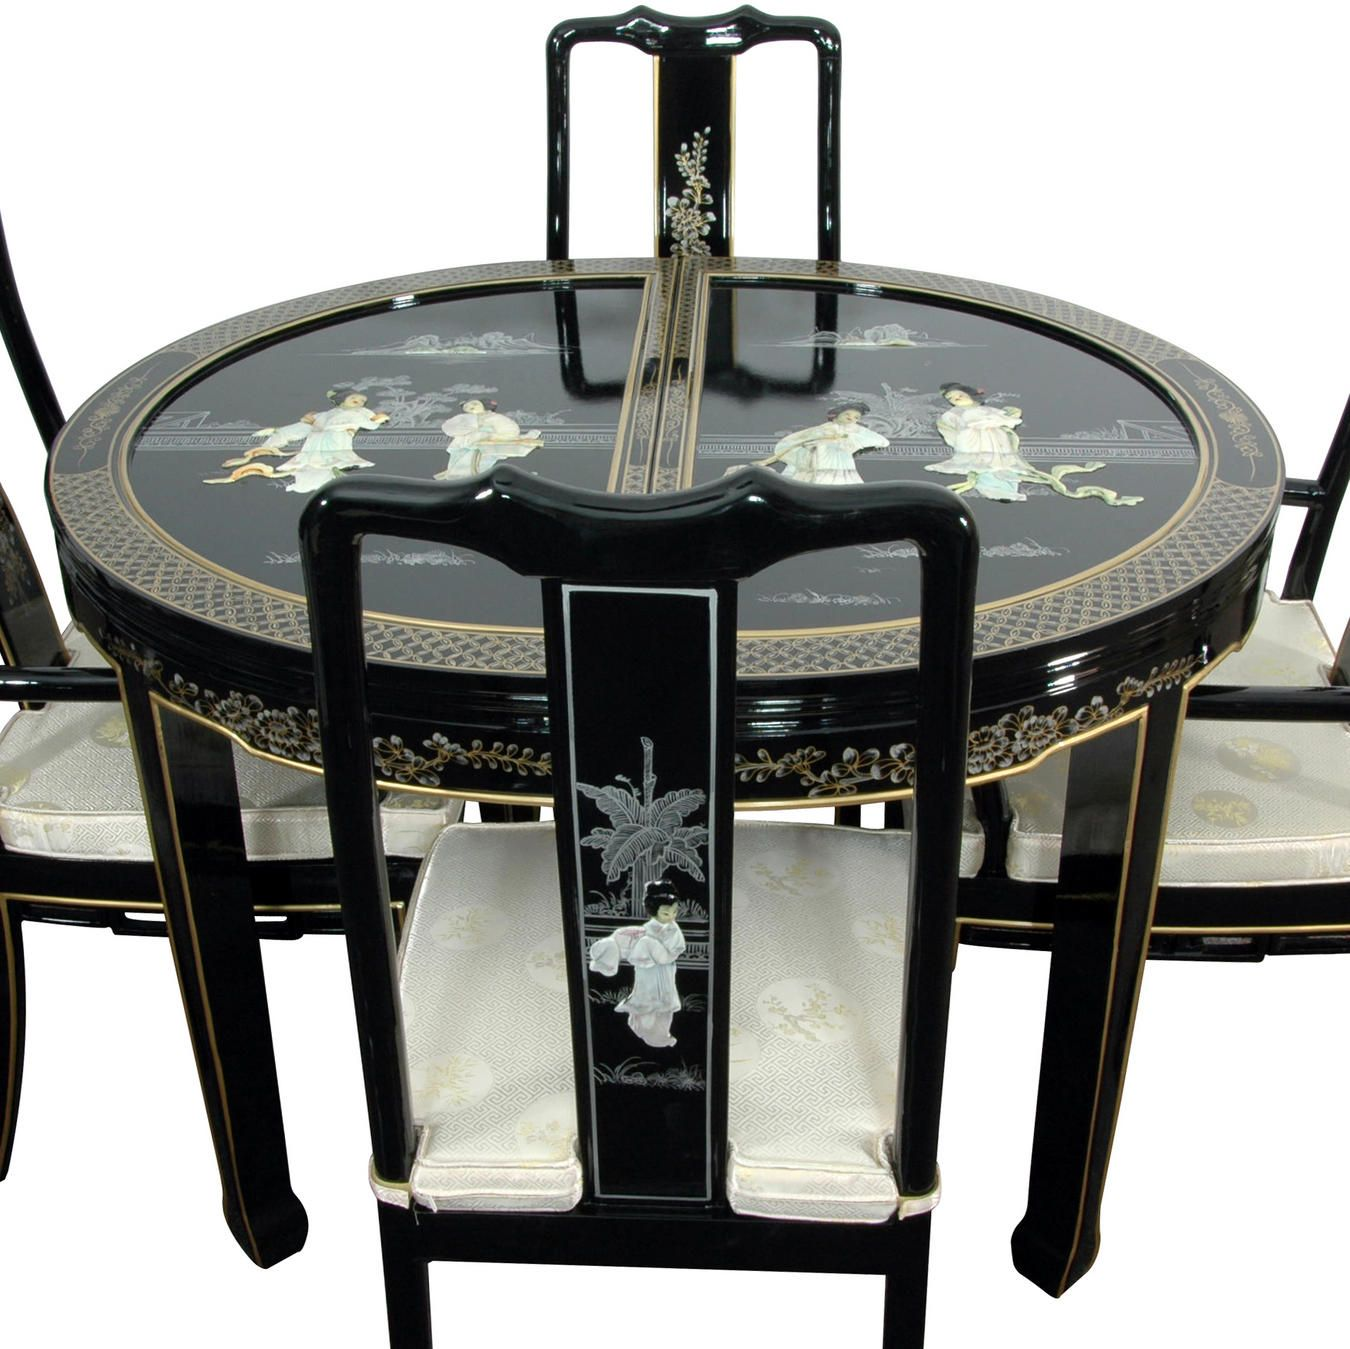 Lacquer Dining Room Set Black Mother Of Pearl Asian Decor Bathroom Asian Inspired Decor Dining Room Furniture